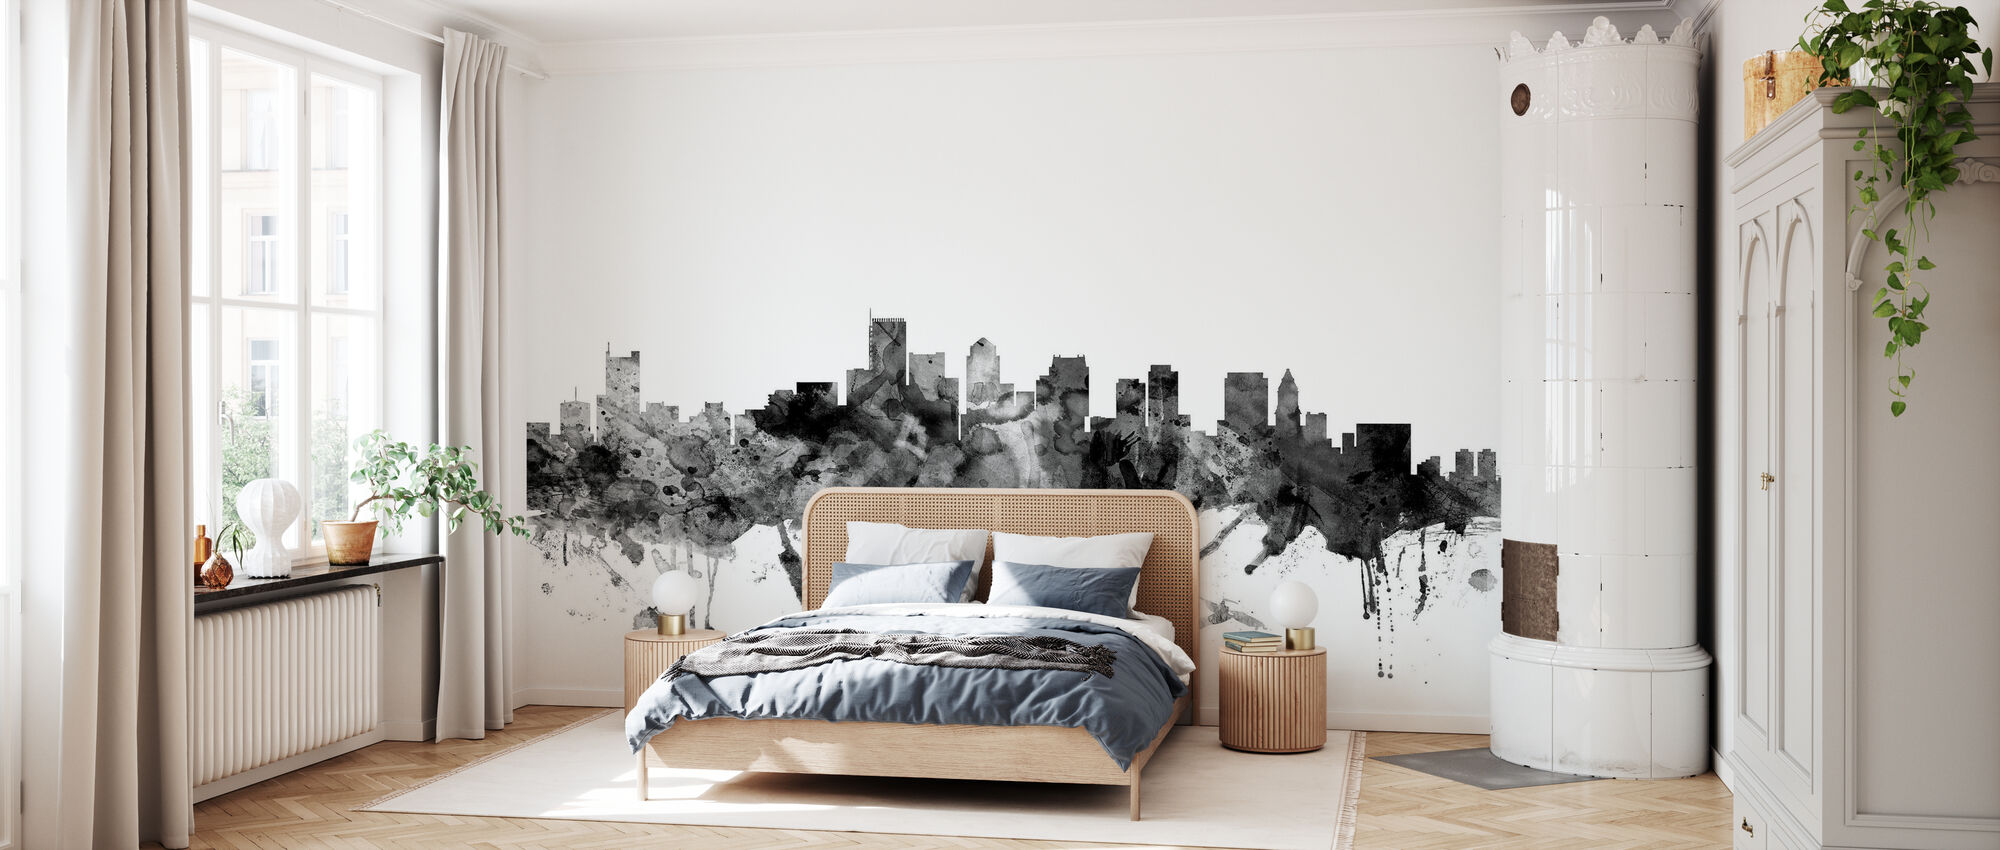 Boston Massachusetts Skyline Black - Wallpaper - Bedroom